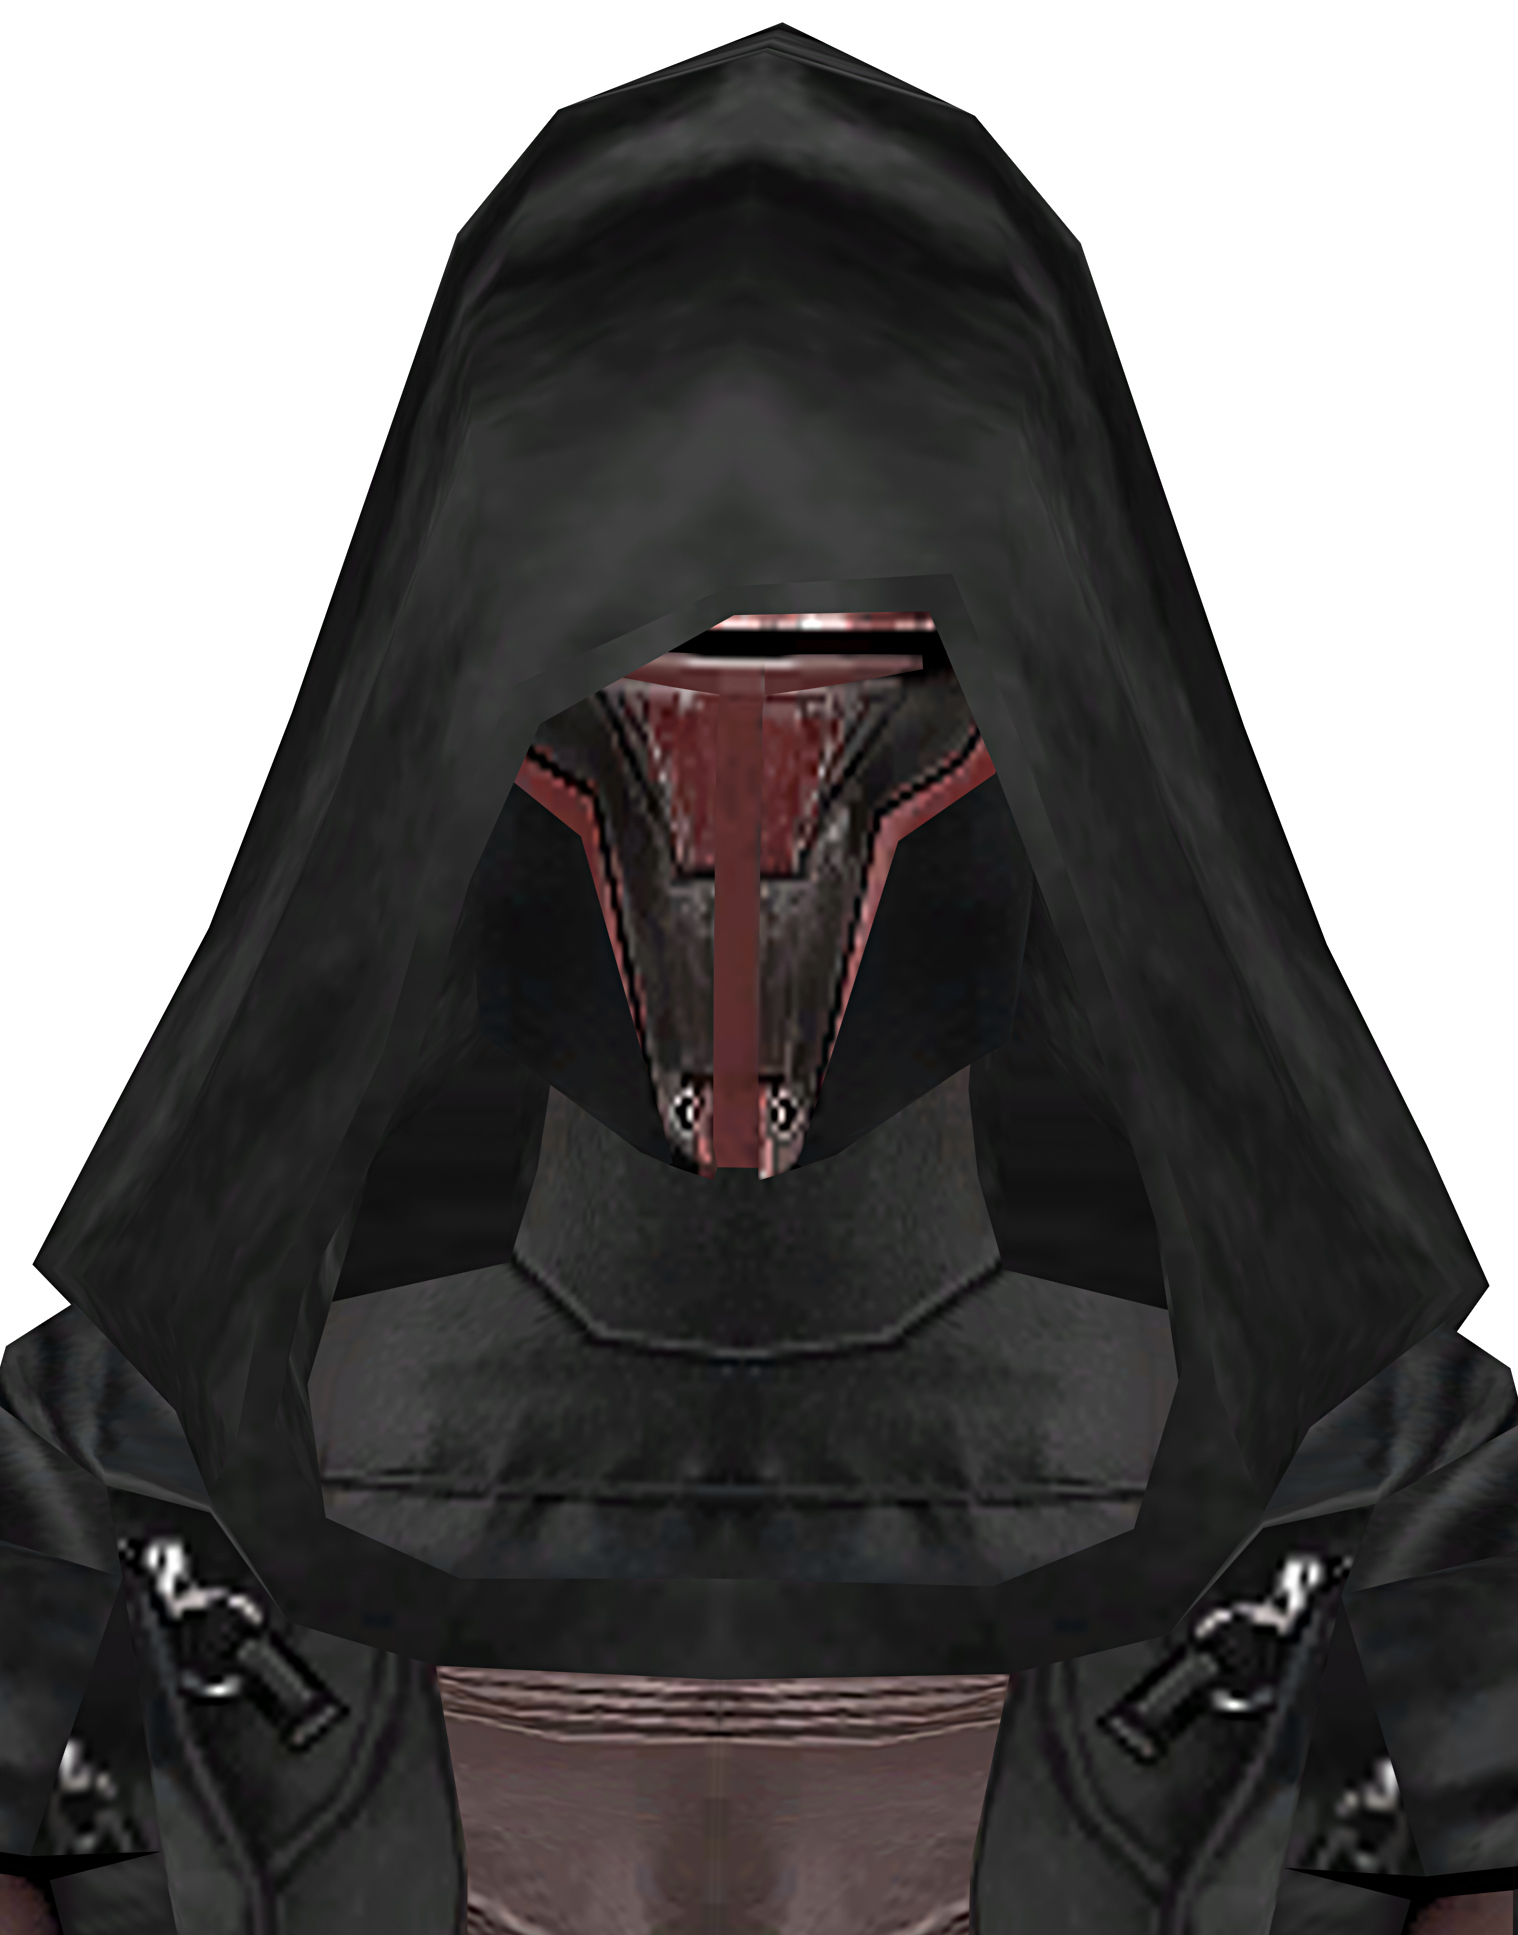 1000 Images About Revan Mask On Pinterest Cowgirl Costume Masks